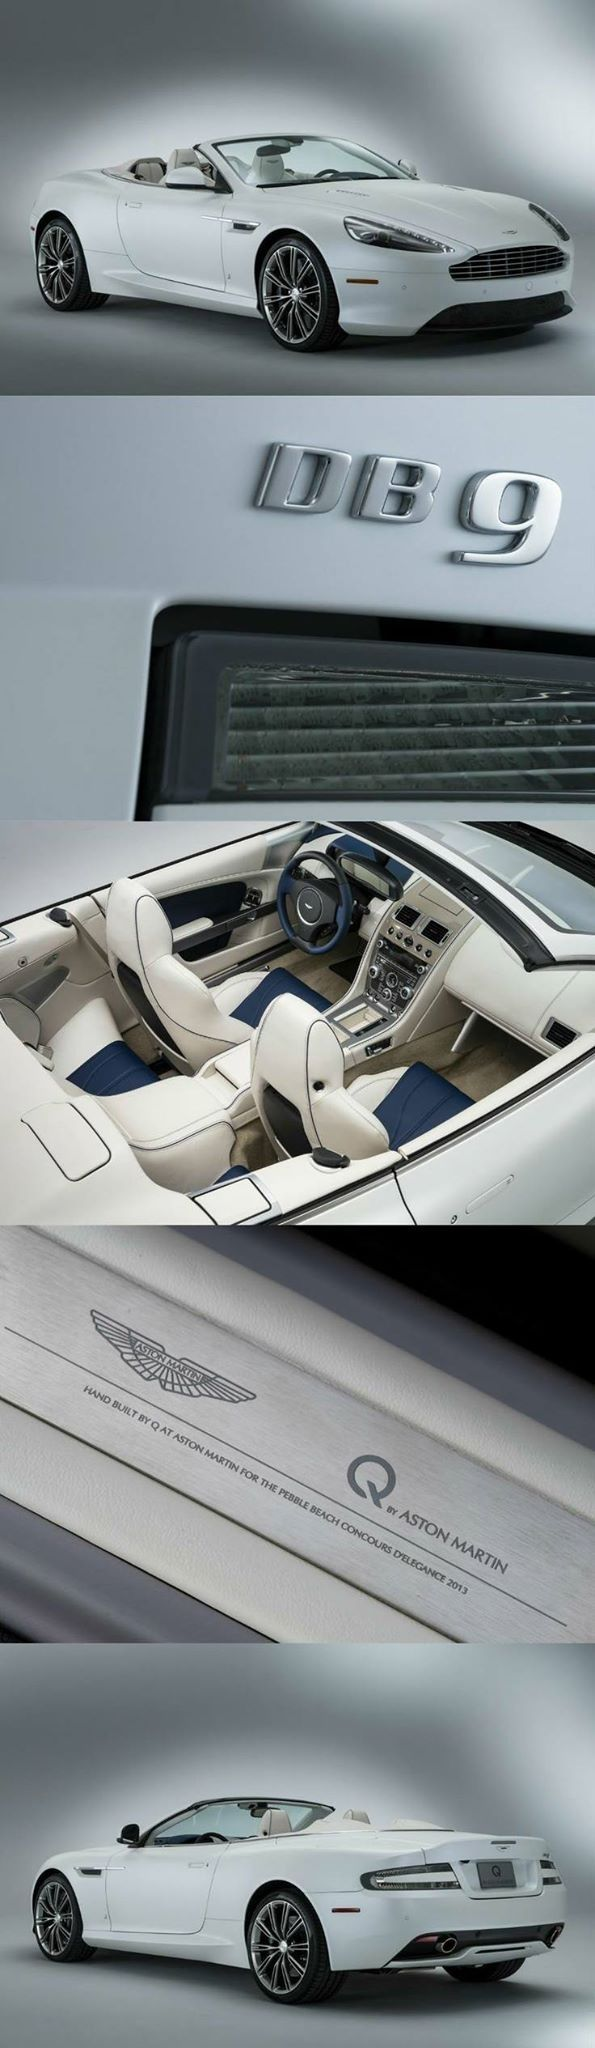 Aston Martin DB9 Q by Aston Martin